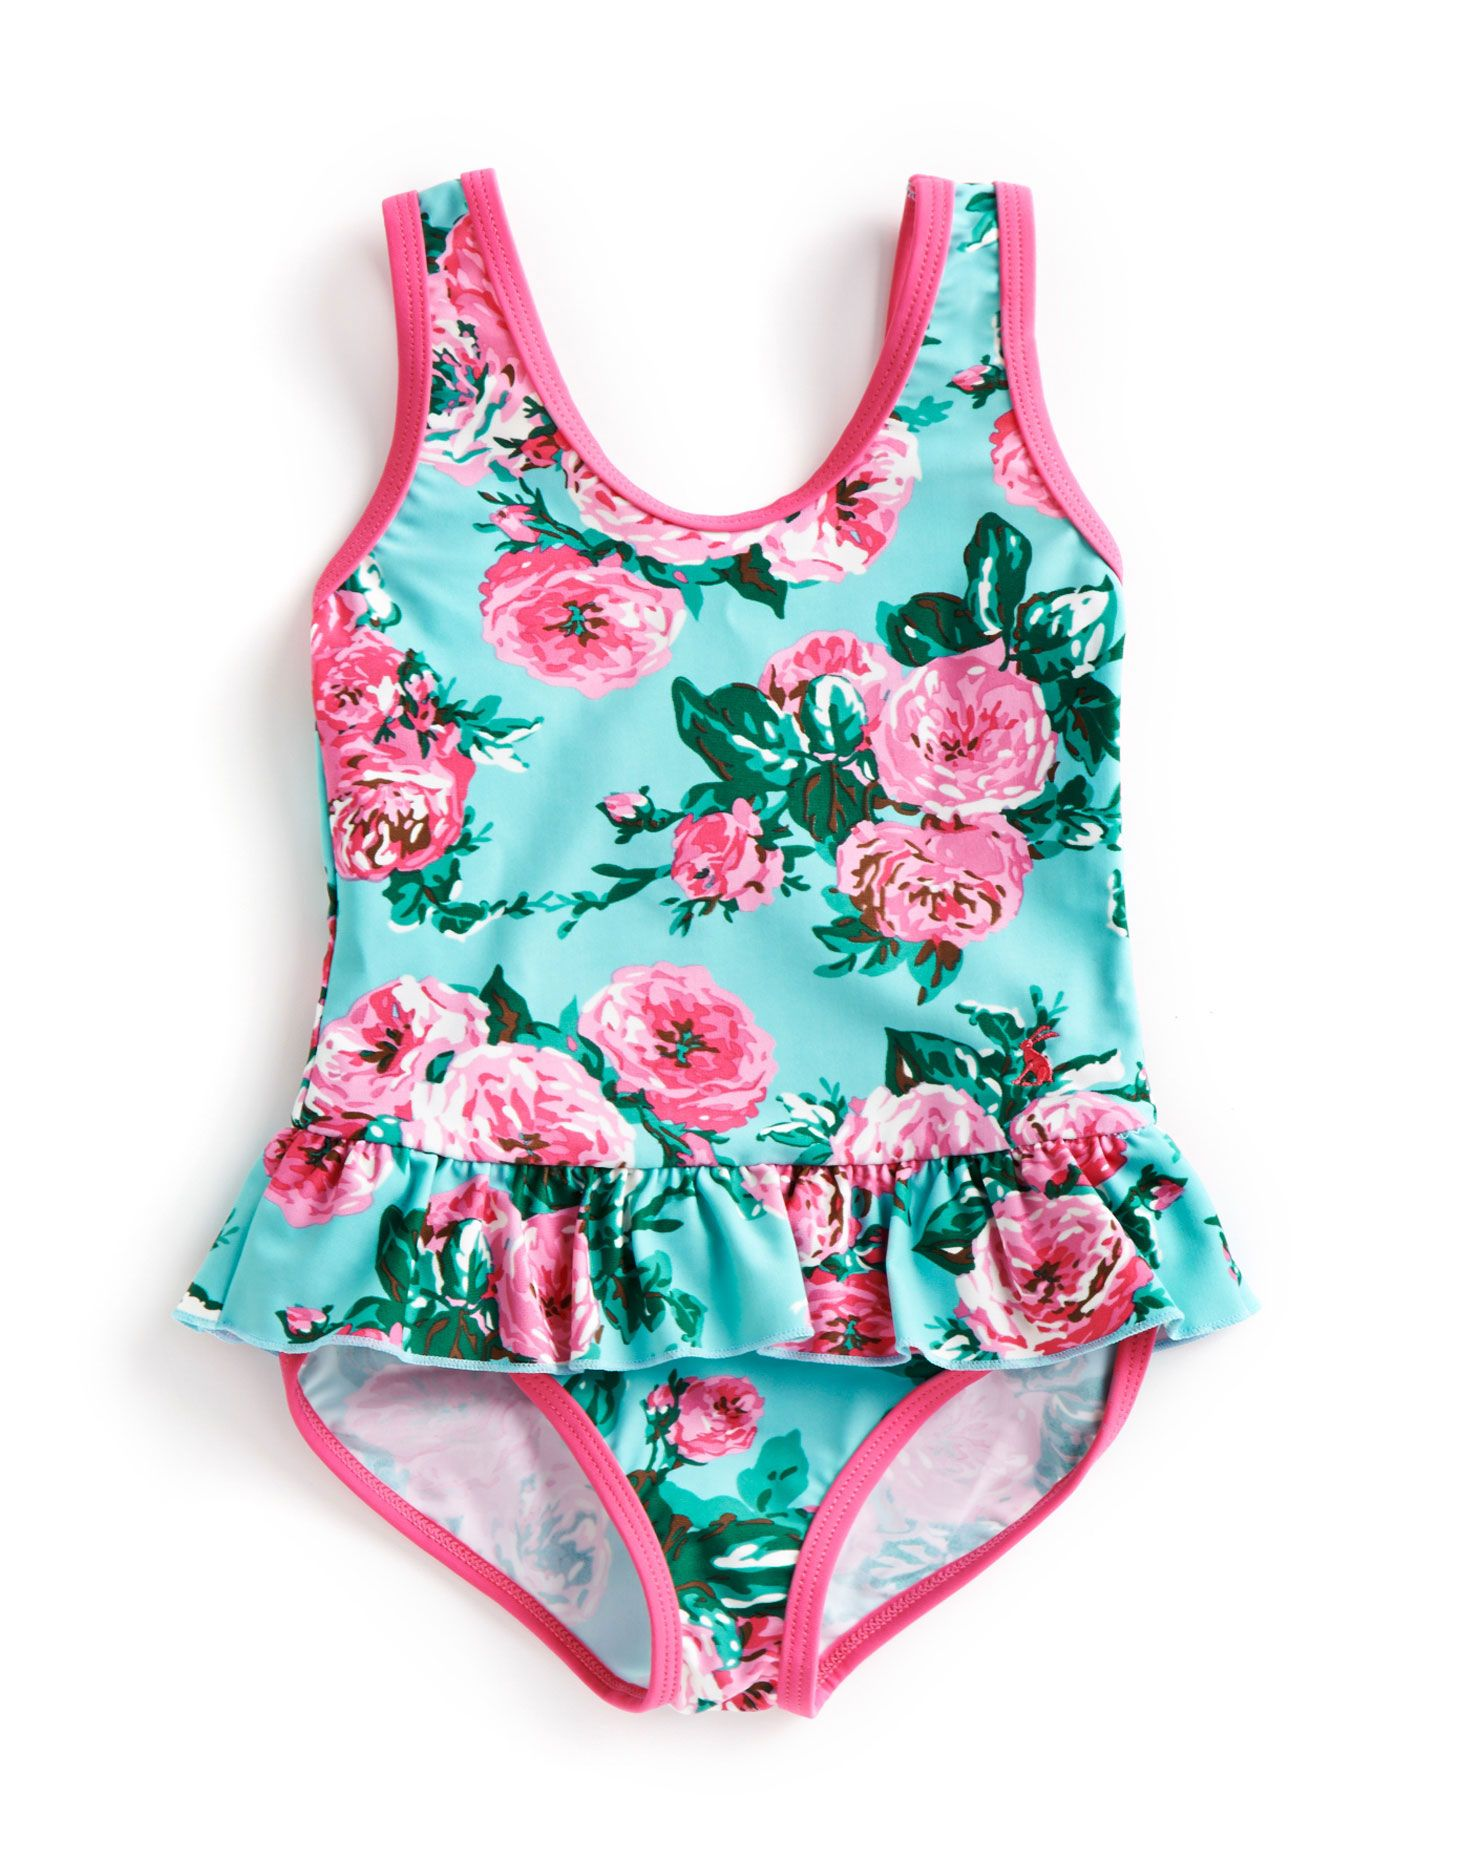 5f42e9376e259 JNR SANDY Girls Swimming Costume-JOULES SS13 | kiddo style | Baby ...